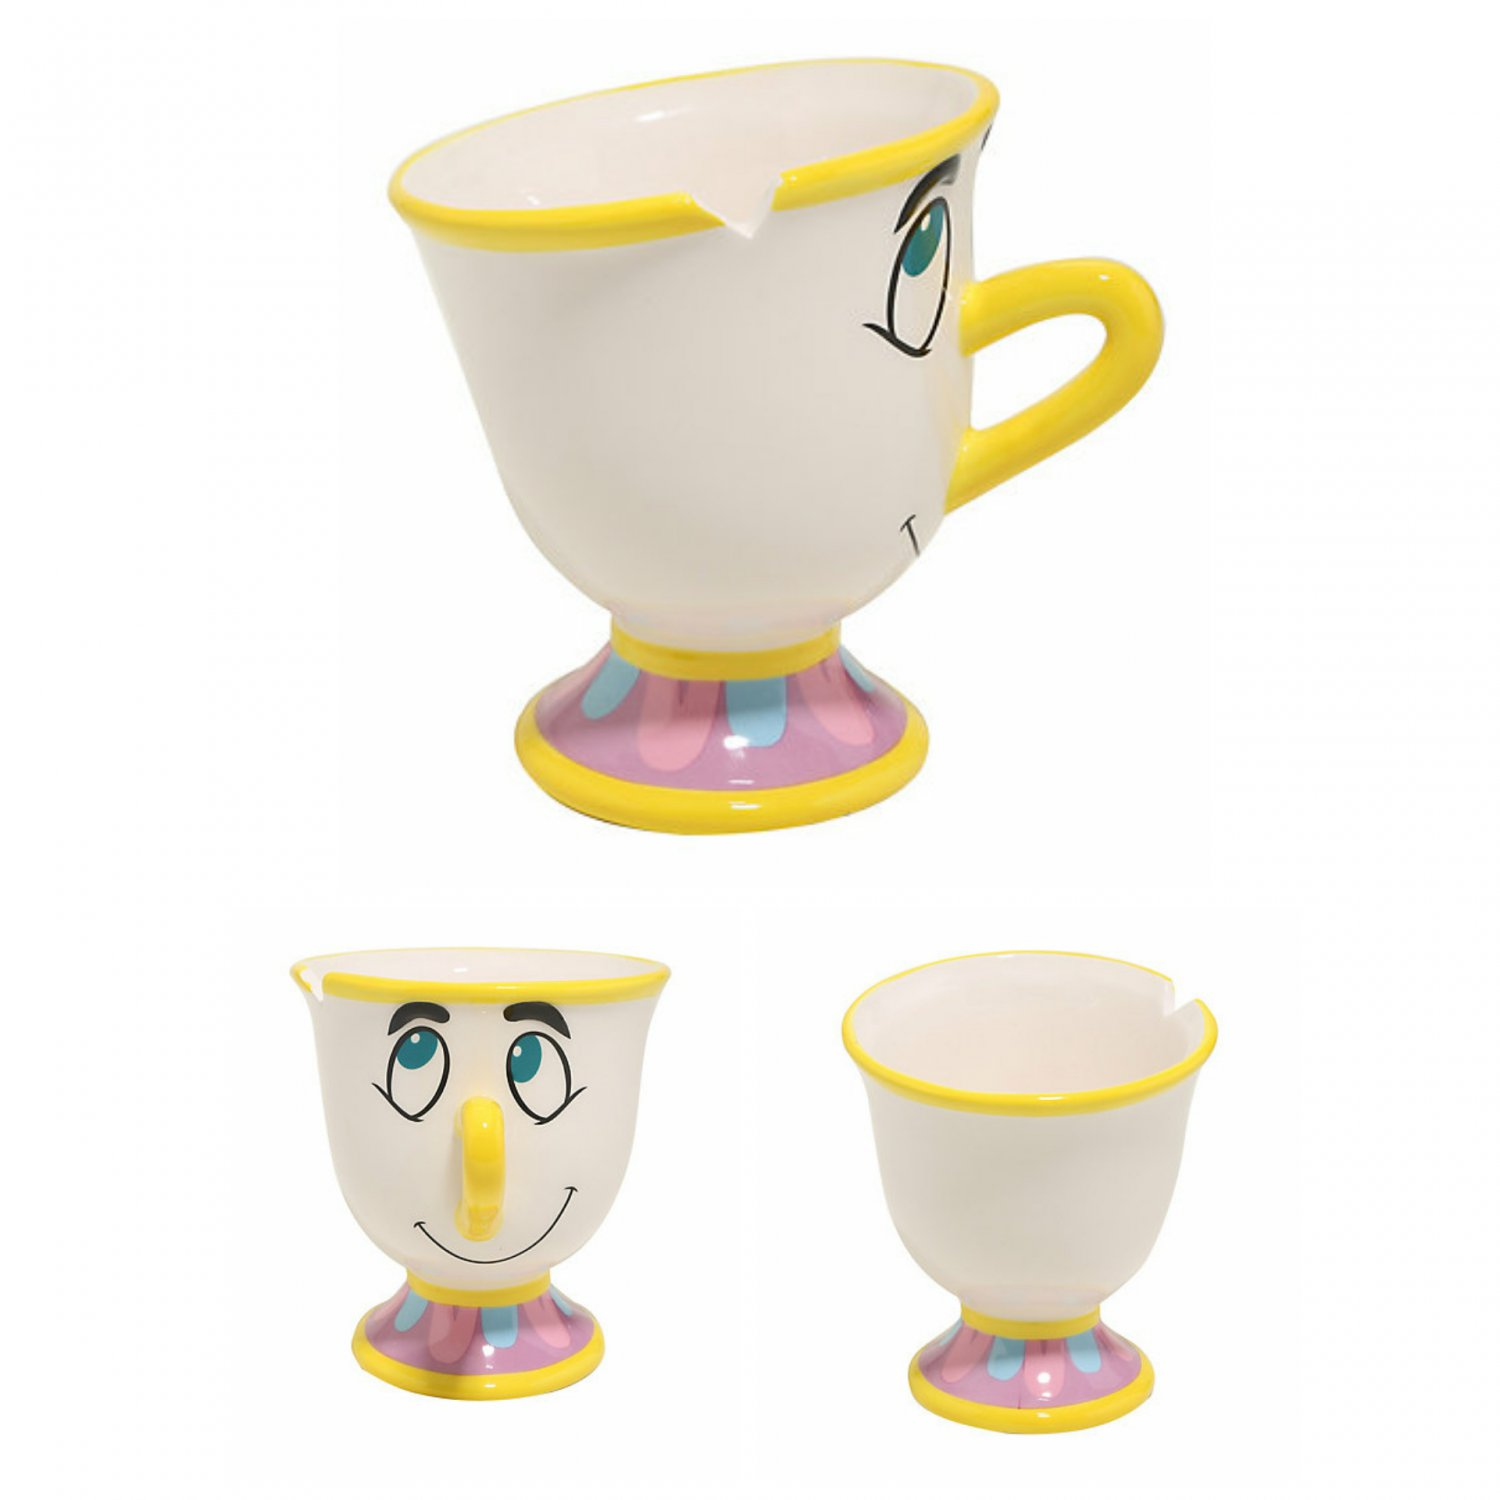 Disney Beauty & The Beast 3D Chip Figural 24 oz. Ceremic Mug Coffee Cup by Silver Buffalo